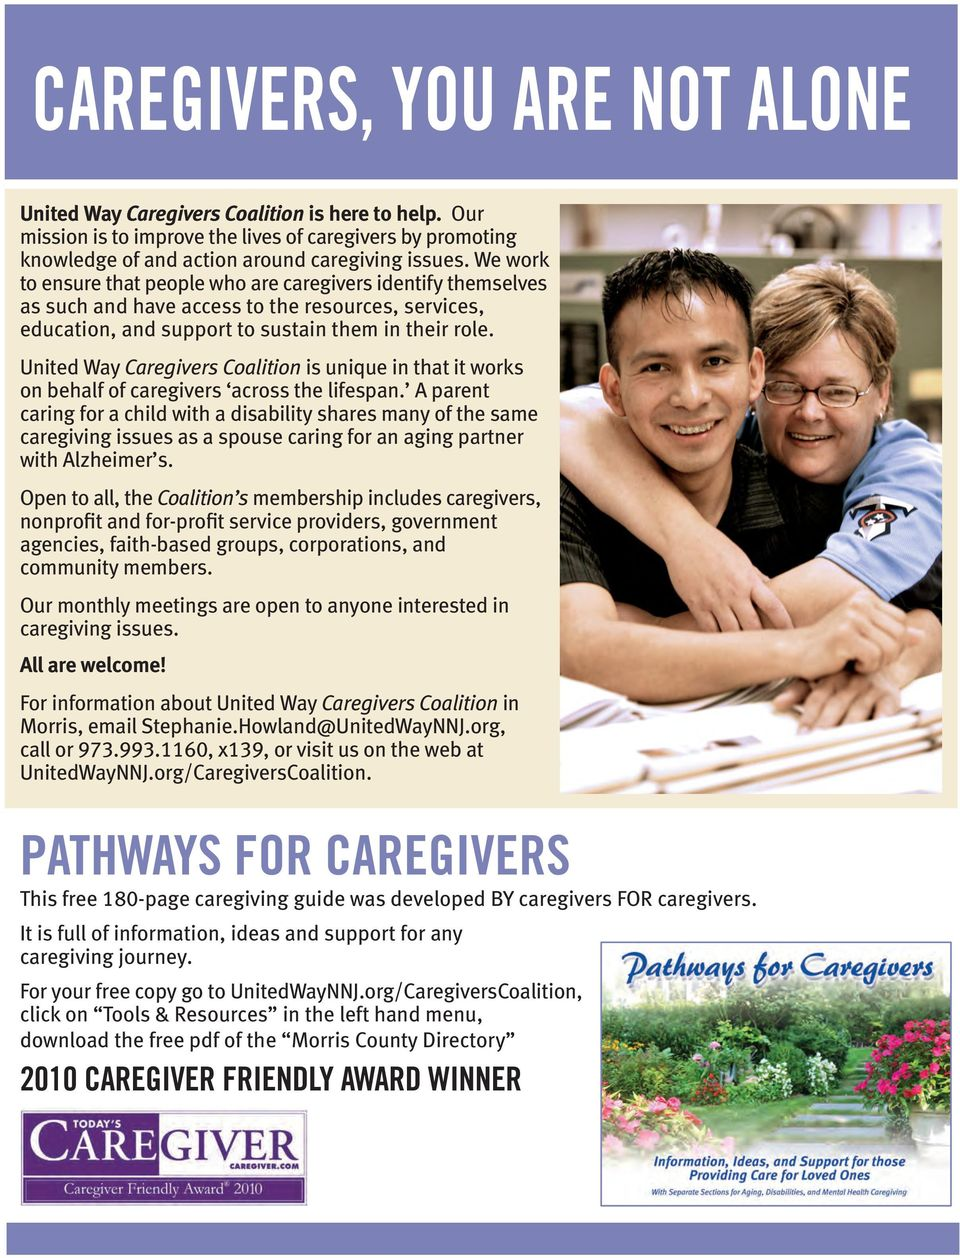 United Way Caregivers Coalition is unique in that it works on behalf of caregivers across the lifespan.